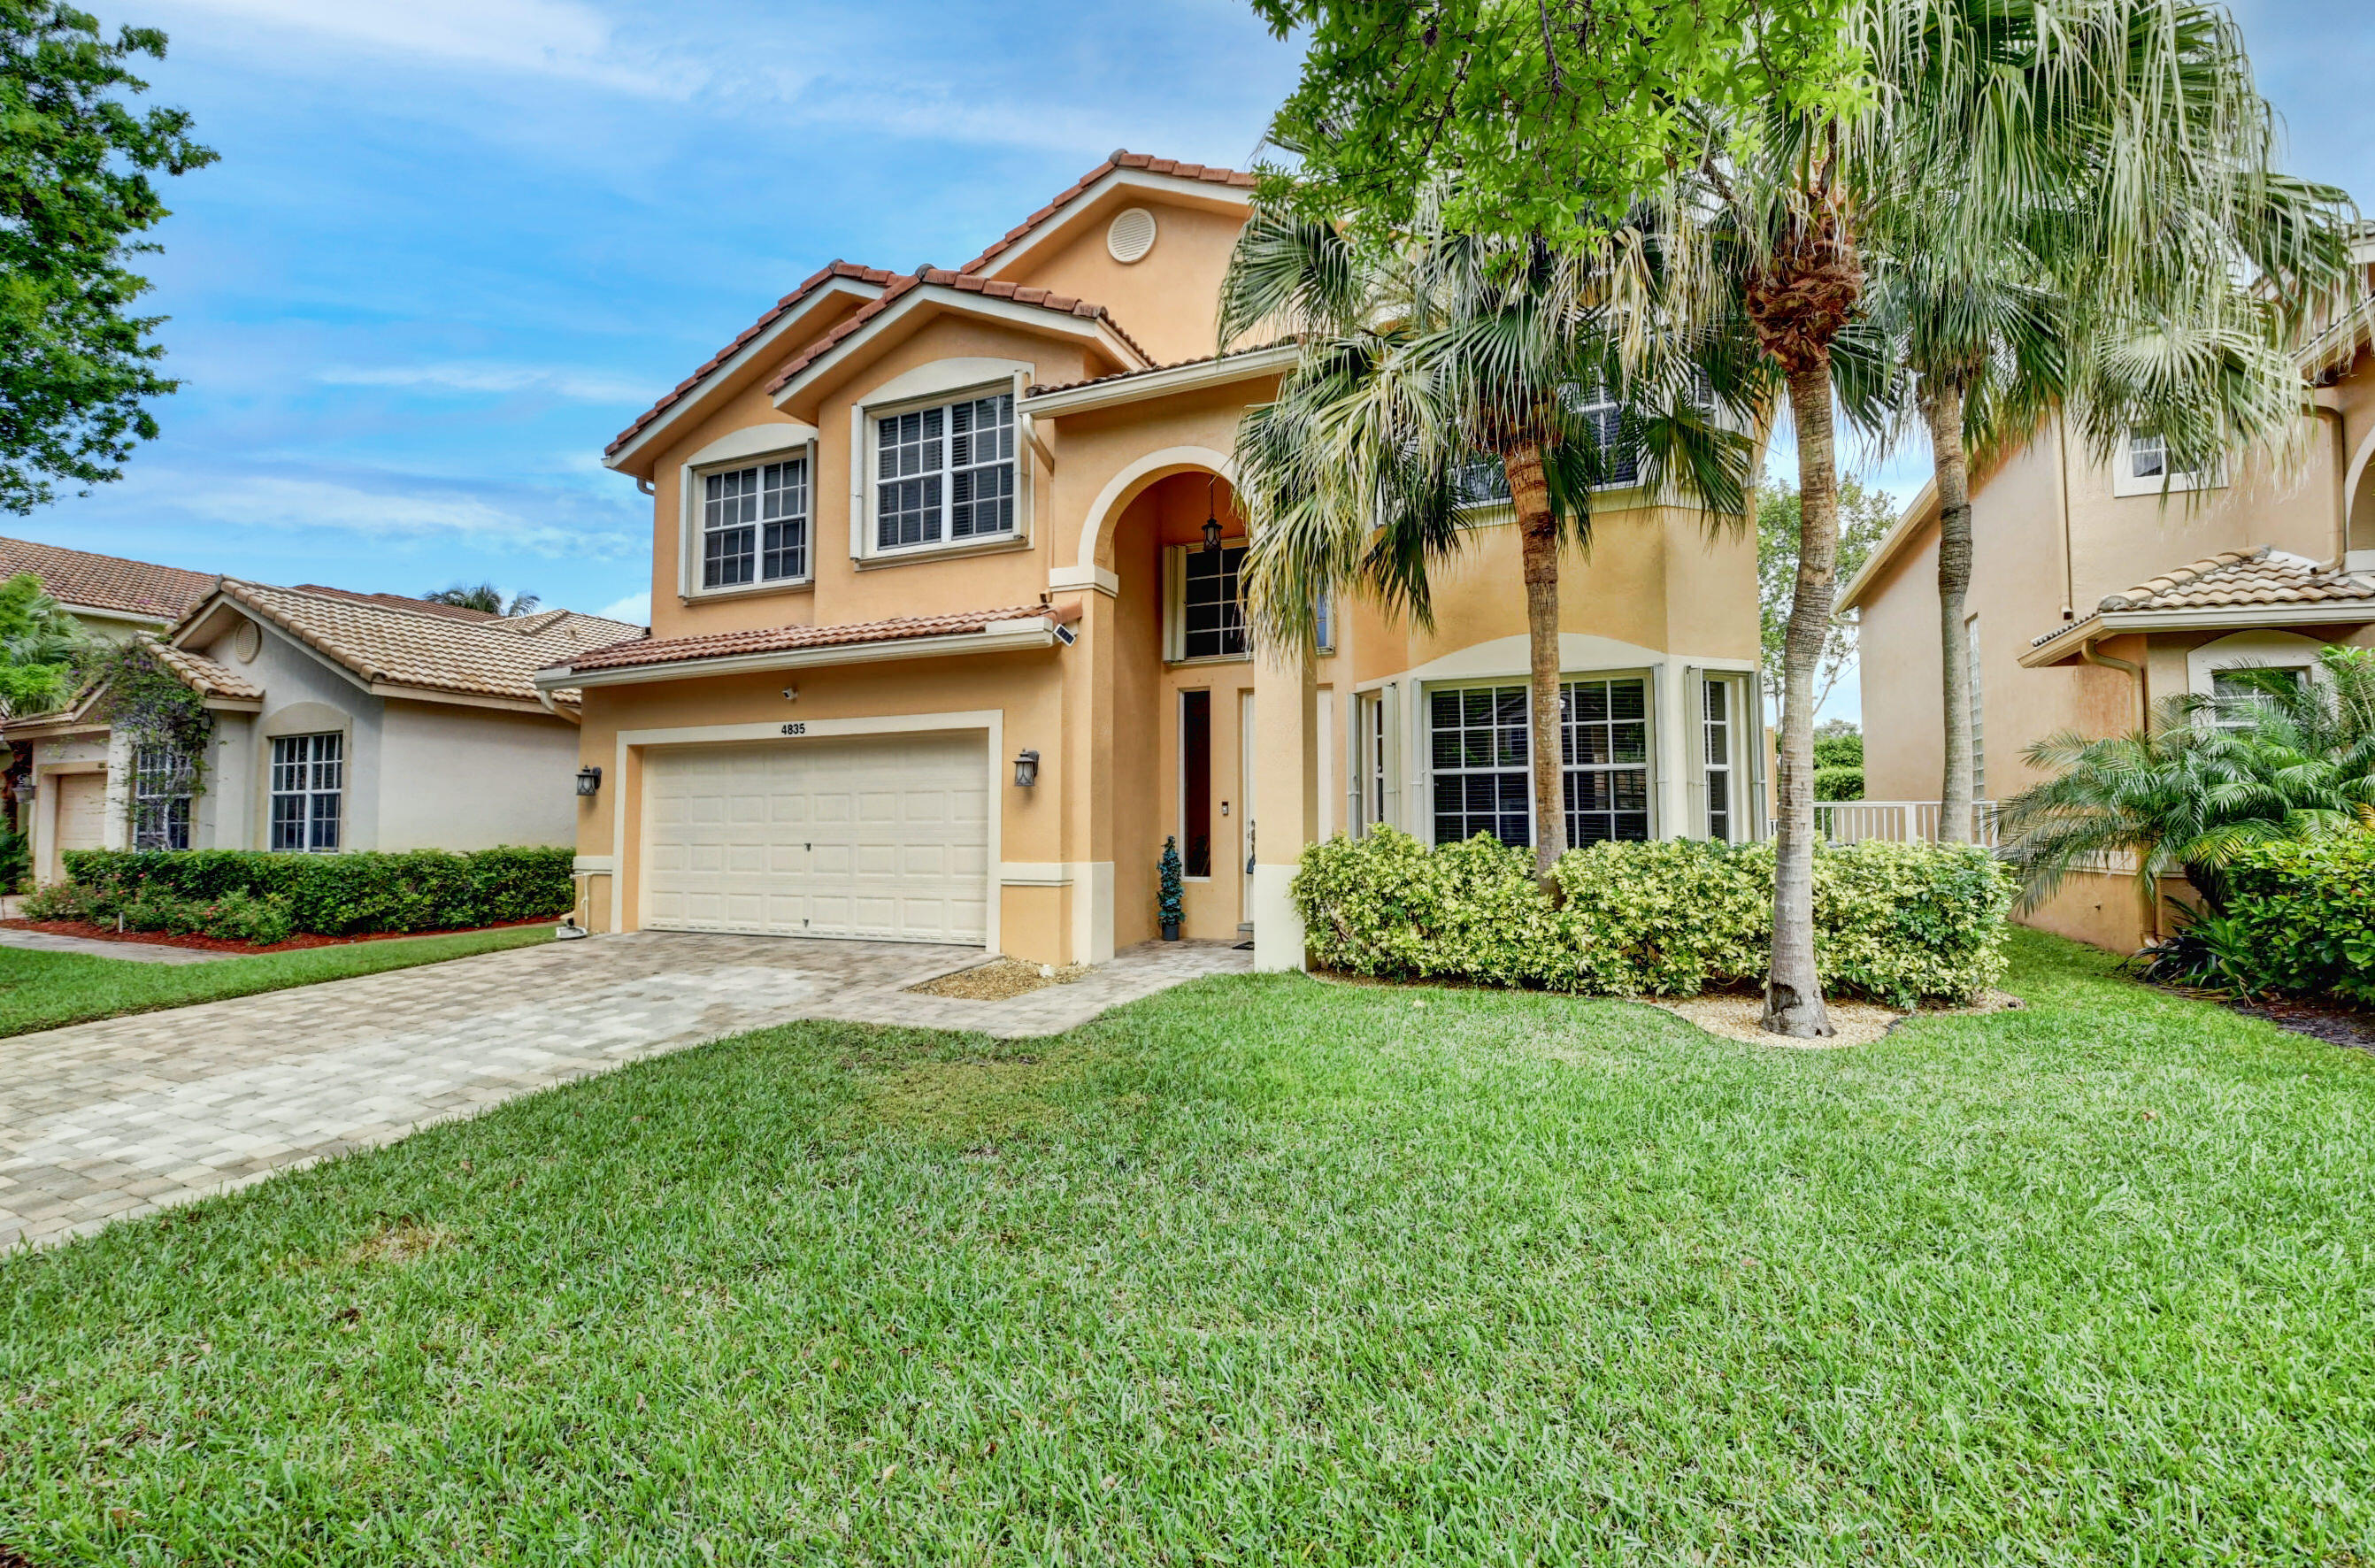 The Colony, Bonita Springs, Florida Real Estate